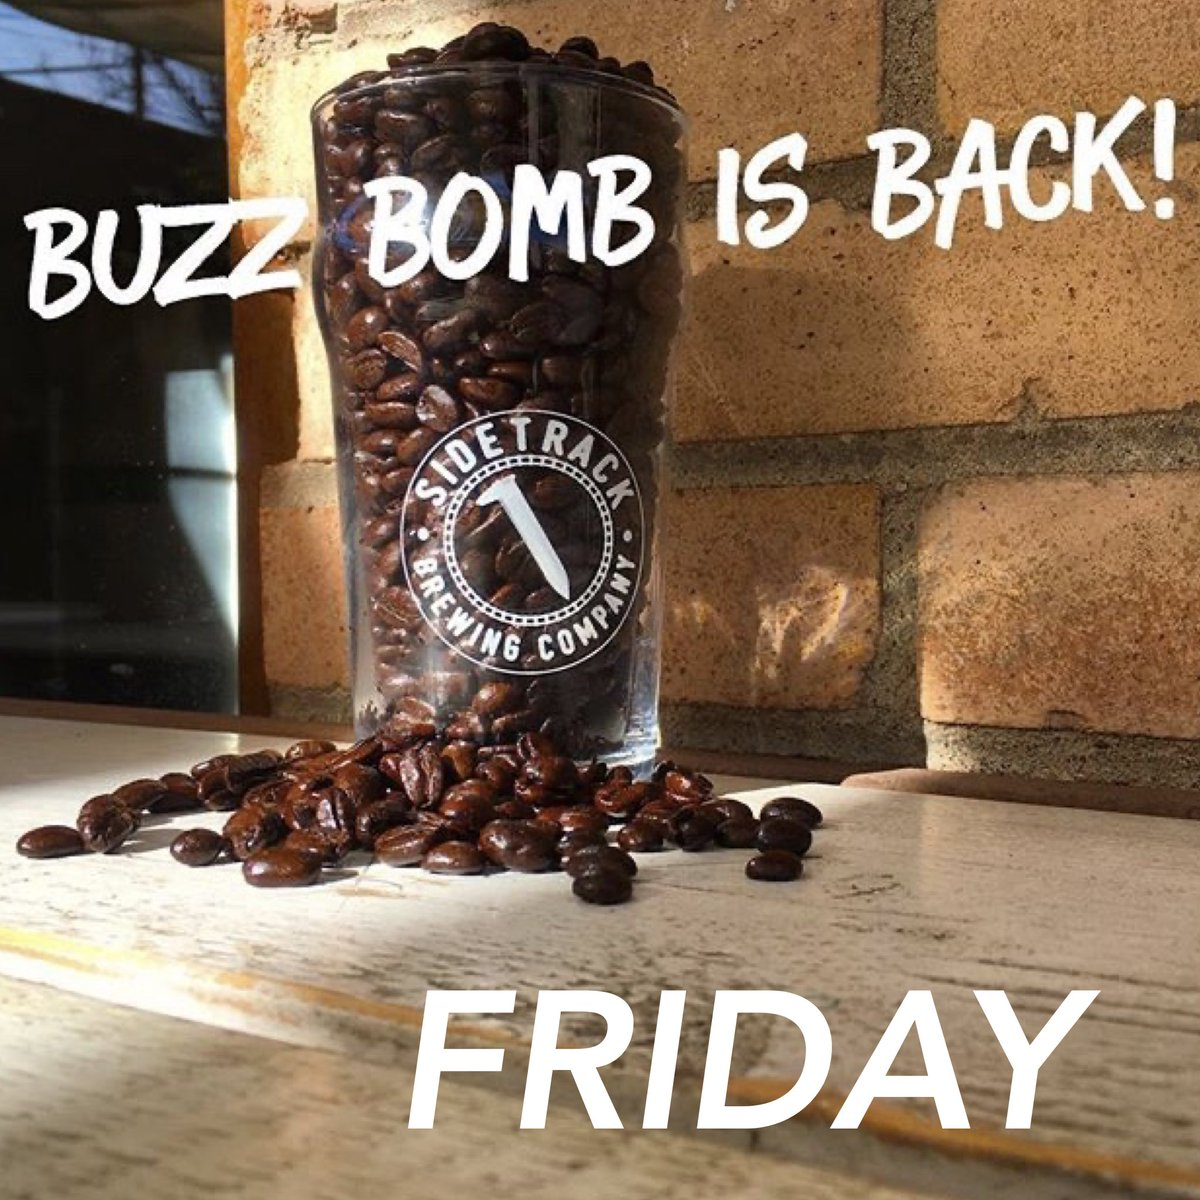 Friday BUZZ BOMB will return. Our coffee pale ale will be available for take home in Travel Cans and Growlers. #travelcan #getittogo #takeithome https://t.co/LHfiZkWR6Z